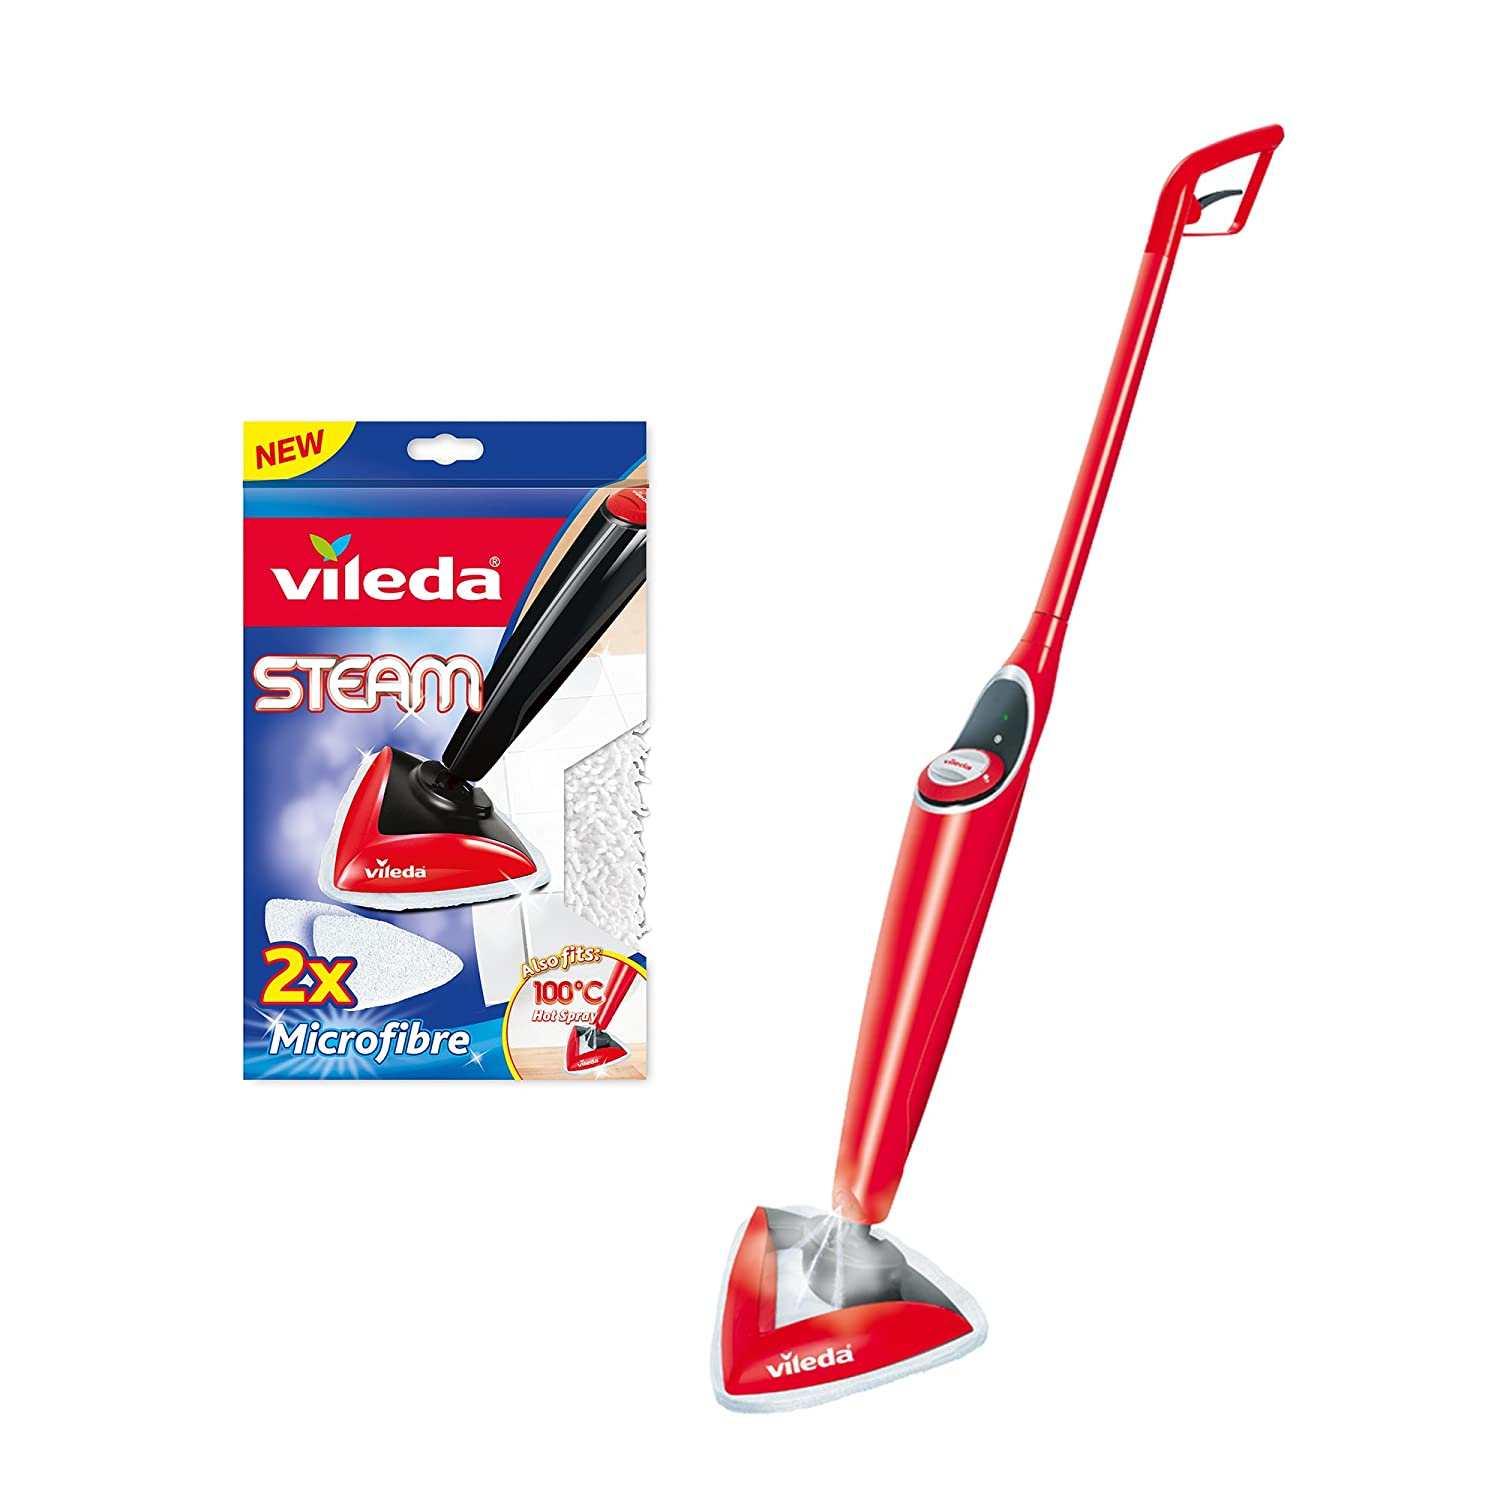 Nye Vileda 100 Hot Spray Mop with Mop Replacement Pads - Pack of 2 VG-32